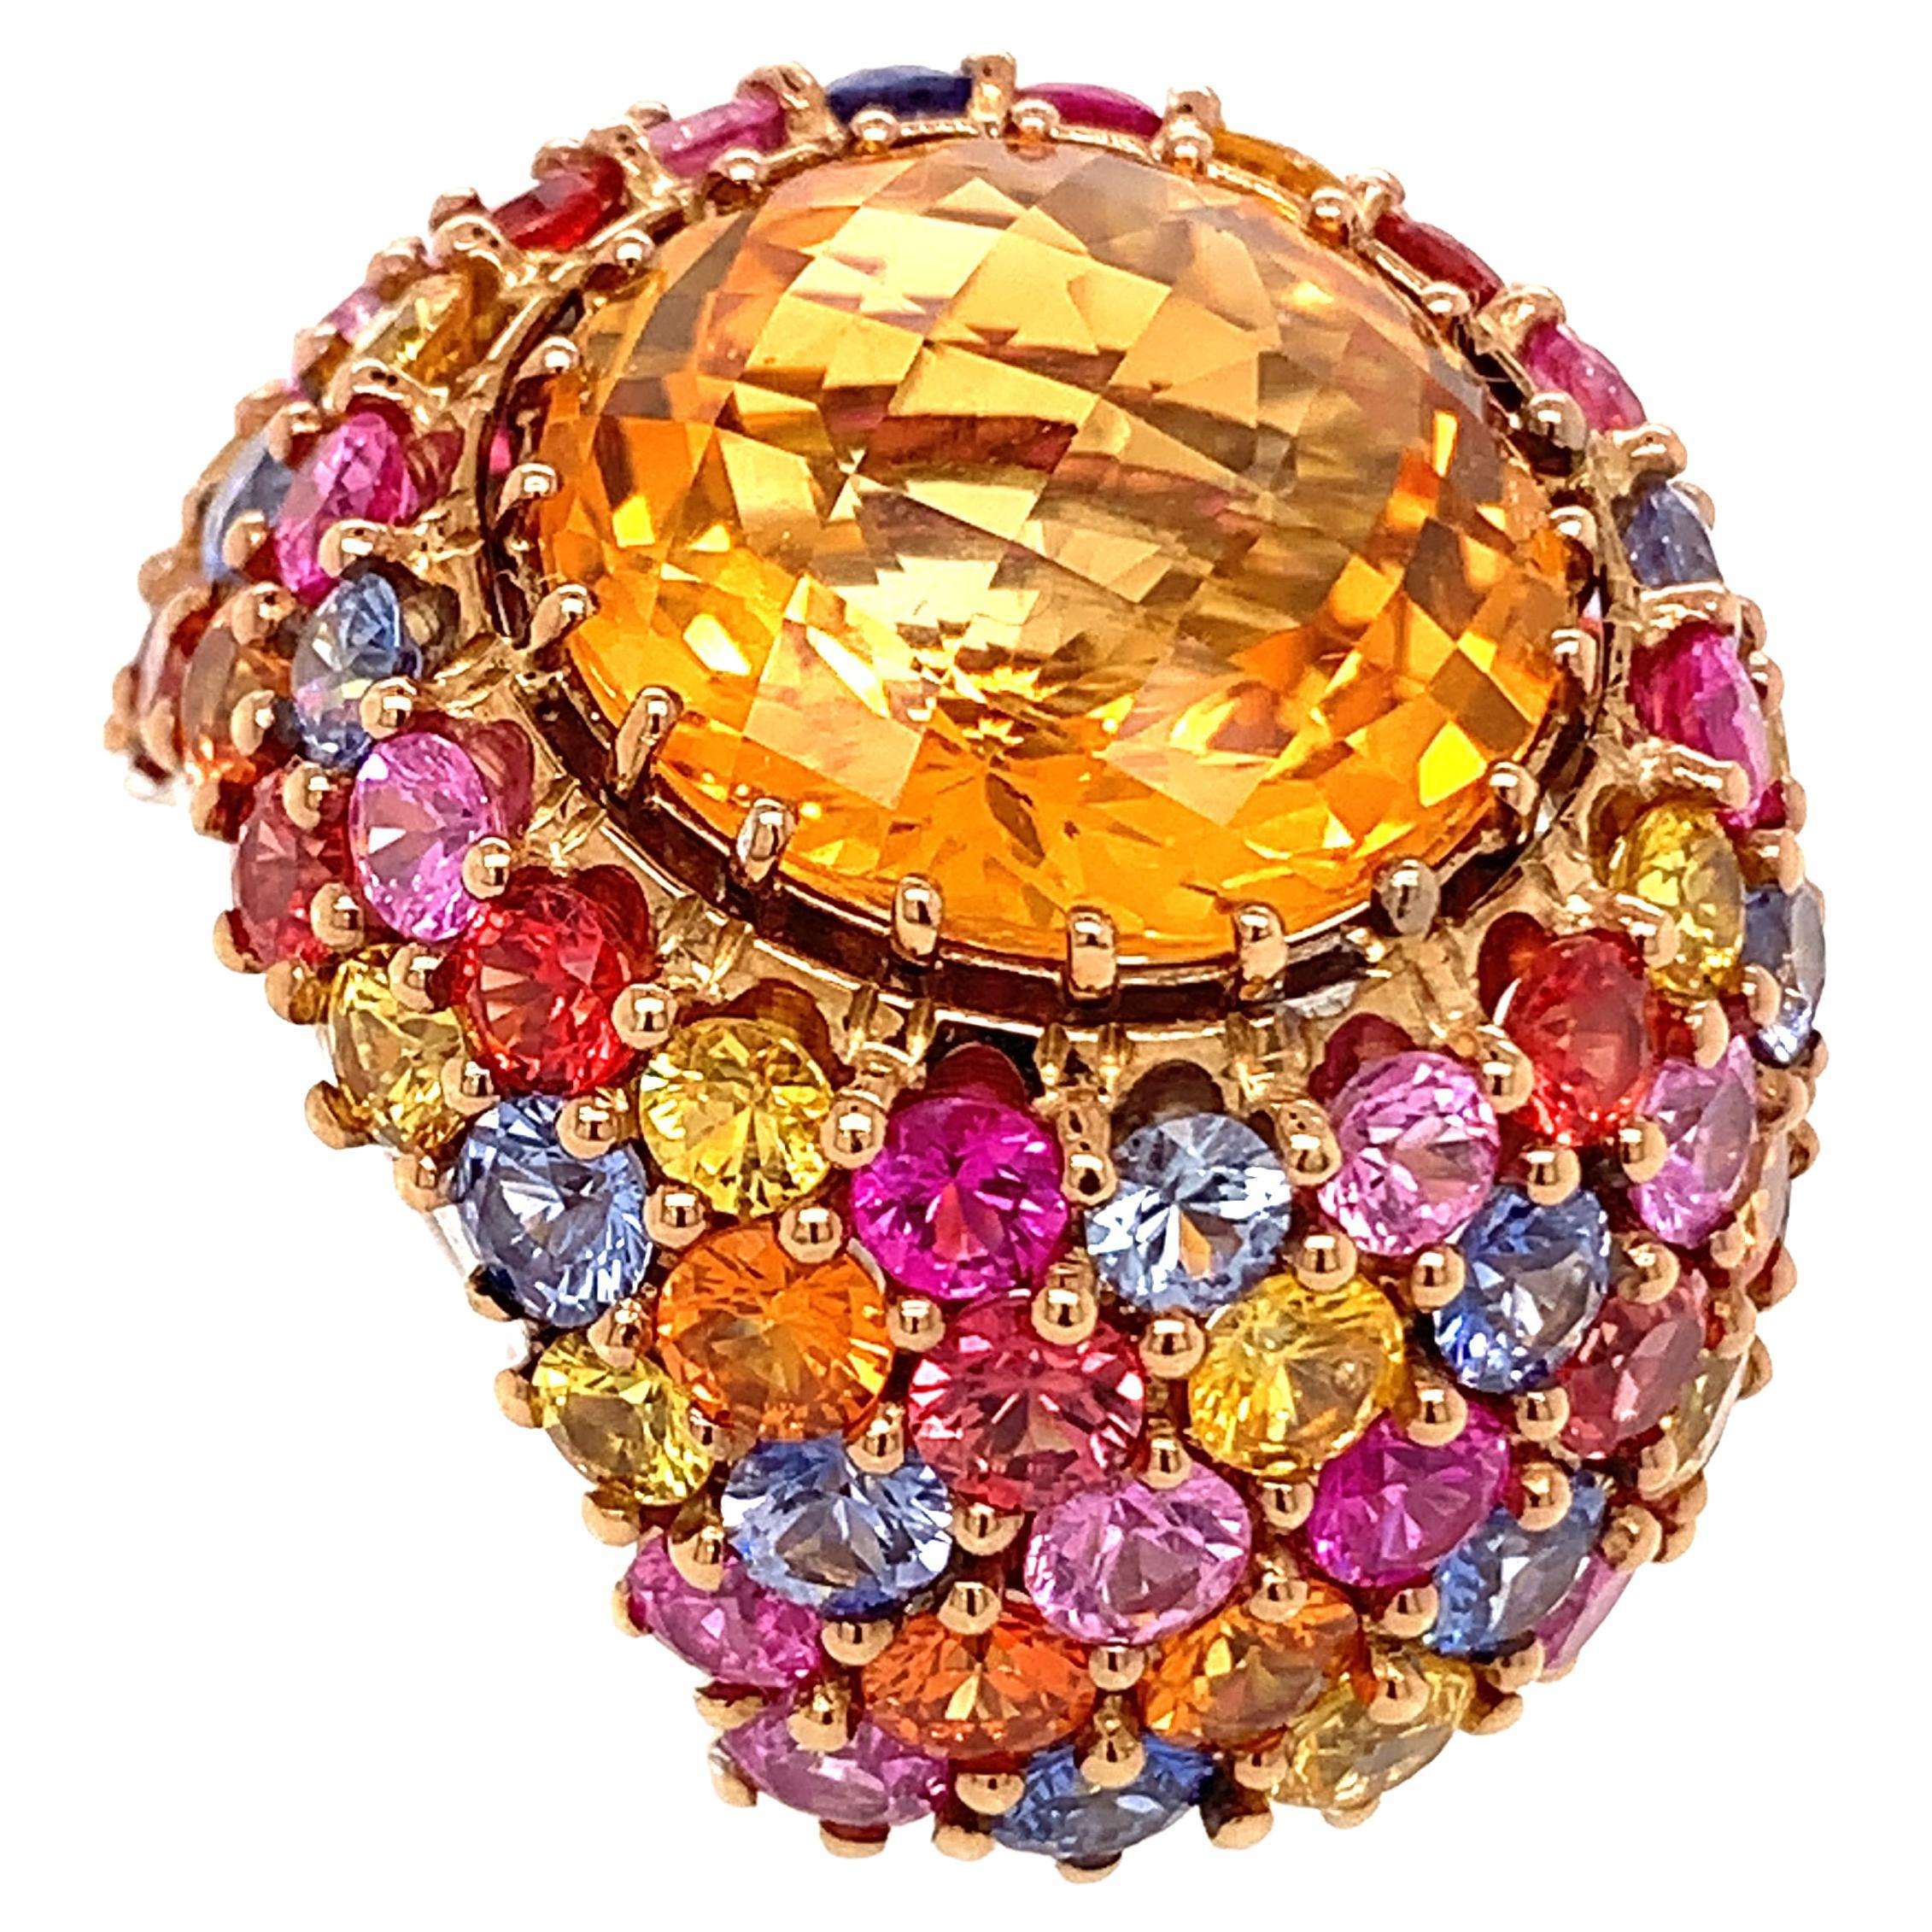 18kt White Gold One of a Kind Ring with 12 Ct Citrine and Multicolor Sapphires